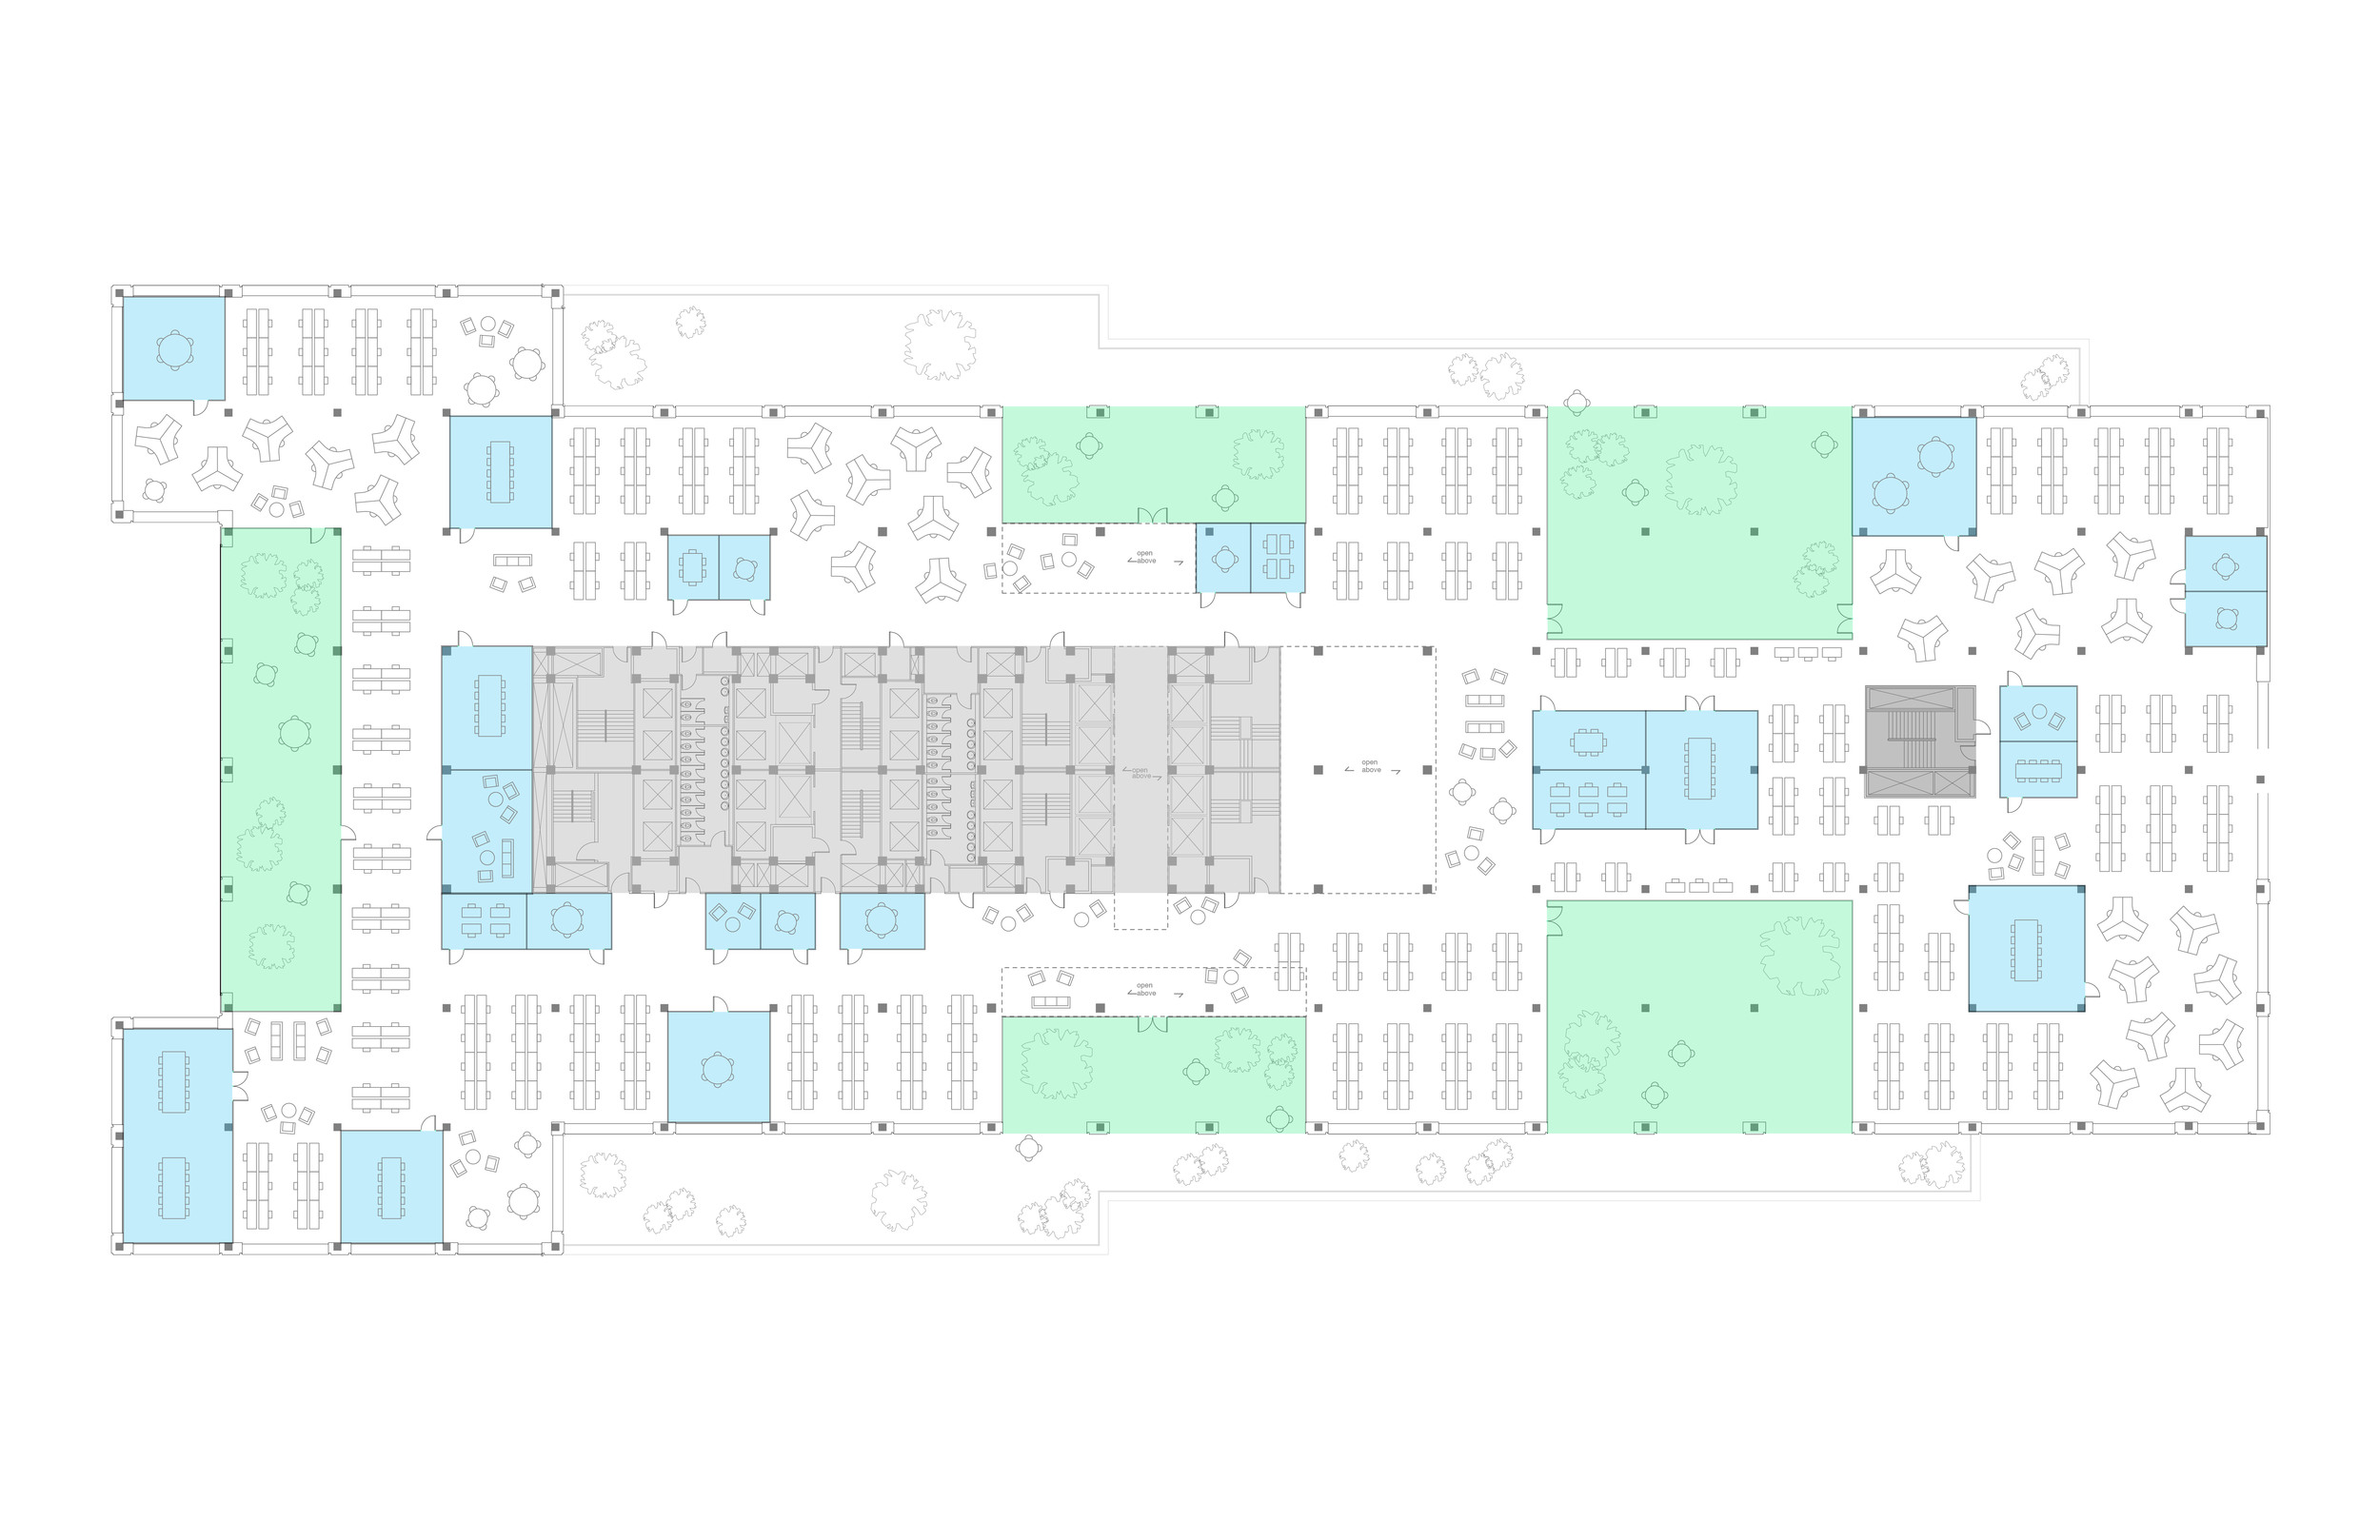 12.04.15 floorplan_24 copy.jpg